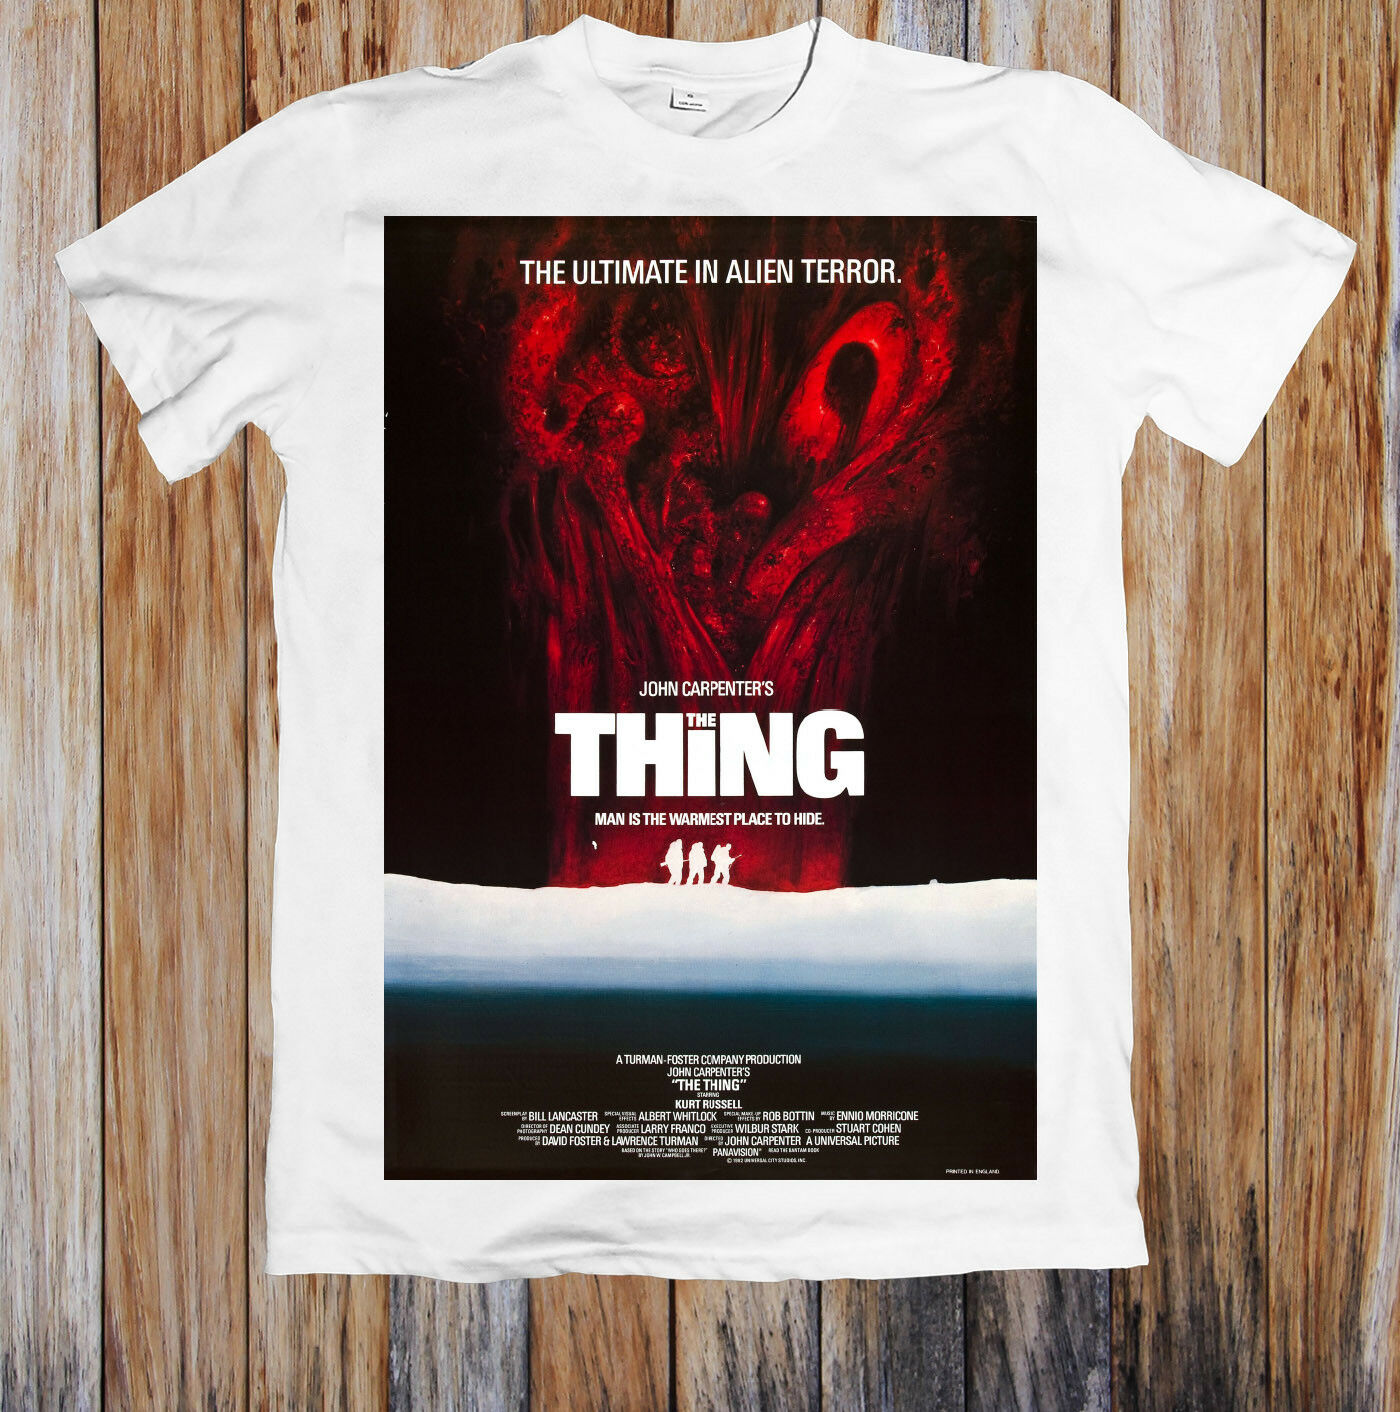 The Thing 1980s Retro Movie Poster Unisex T Shirt 2020 High quality Brand T shirt Casual Short sleeve O-neck Fashion Printed 100 image